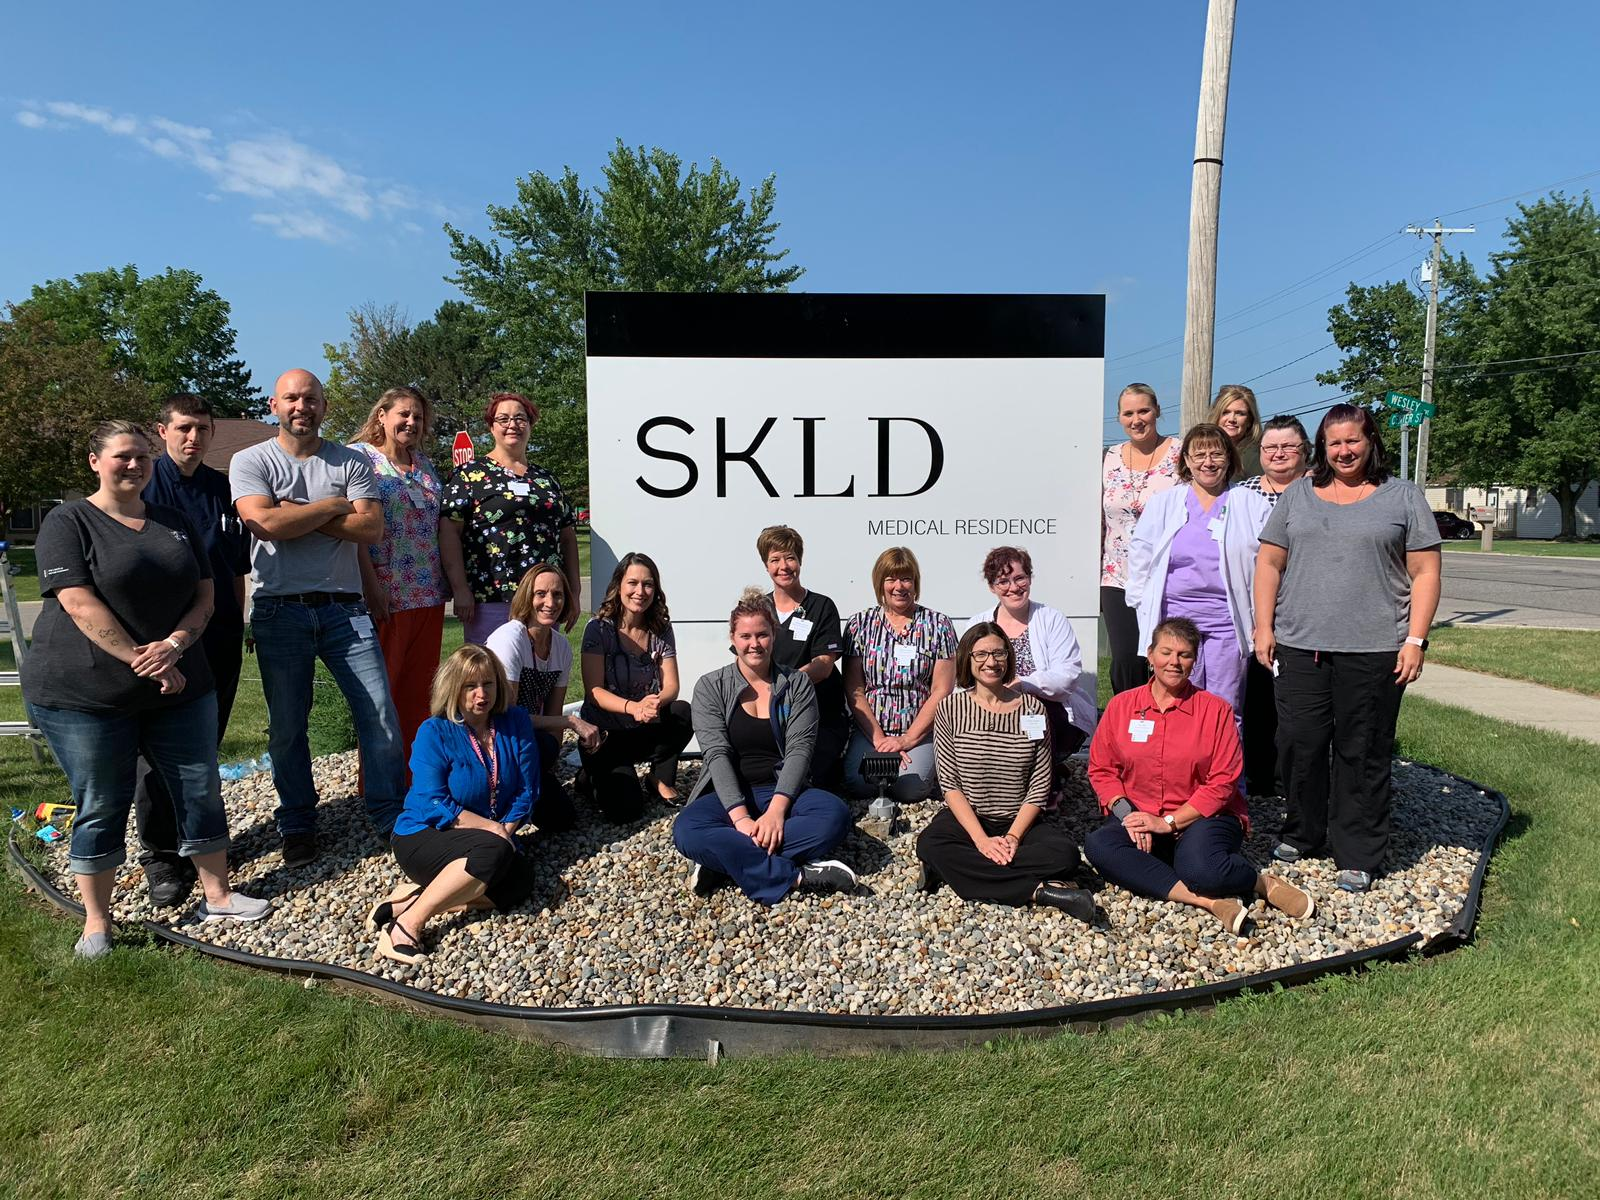 SKLD Bryan was so excited about their new sign, that they interrupted the installation to take a group photo, even before the address was posted.